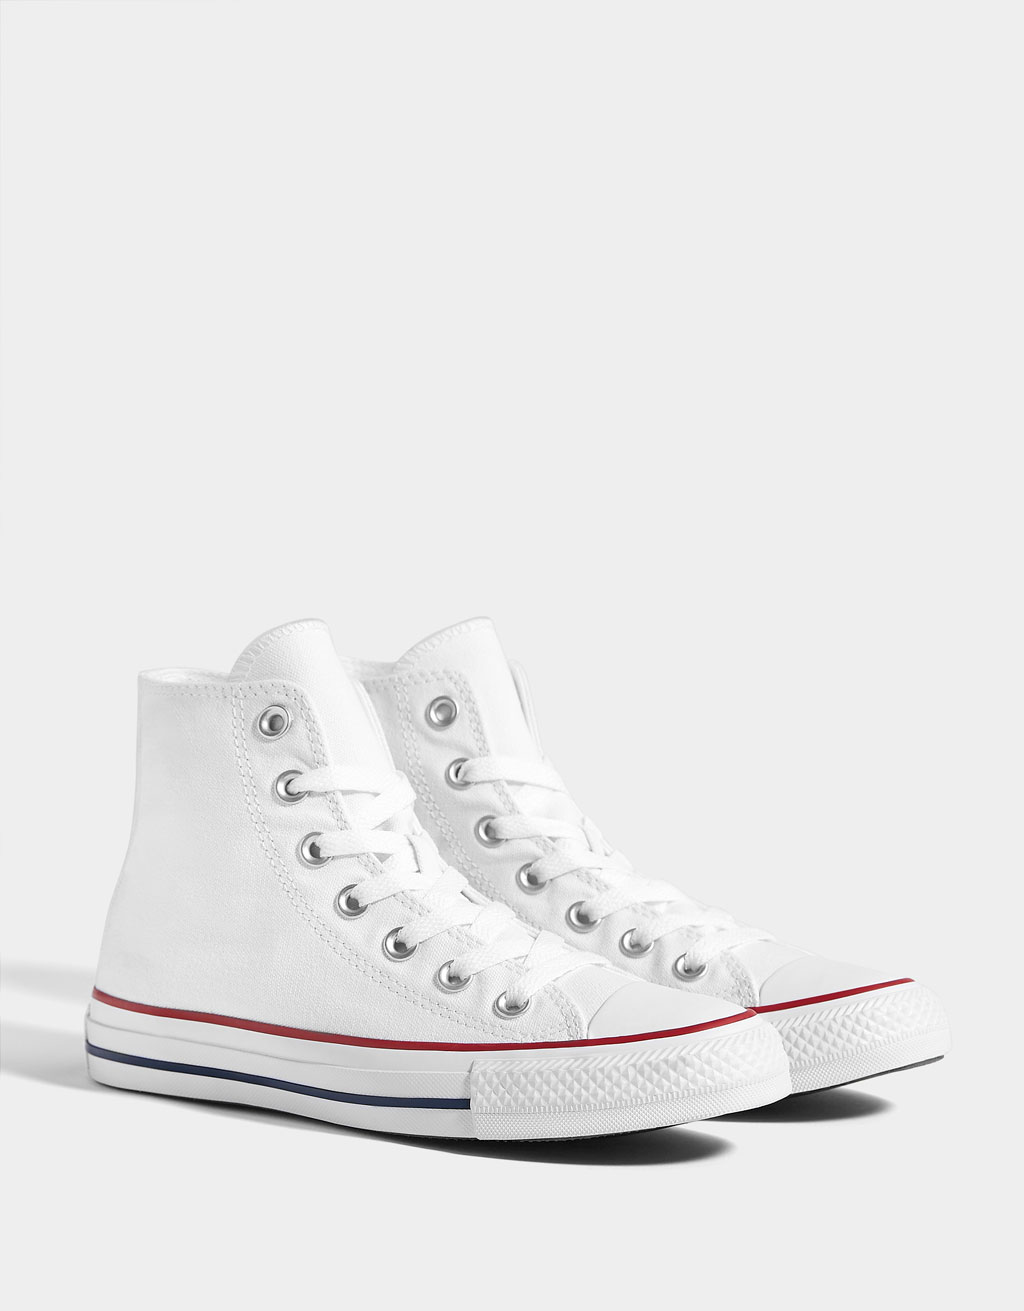 CONVERSE CHUCK TAYLOR ALL STAR high-top trainers